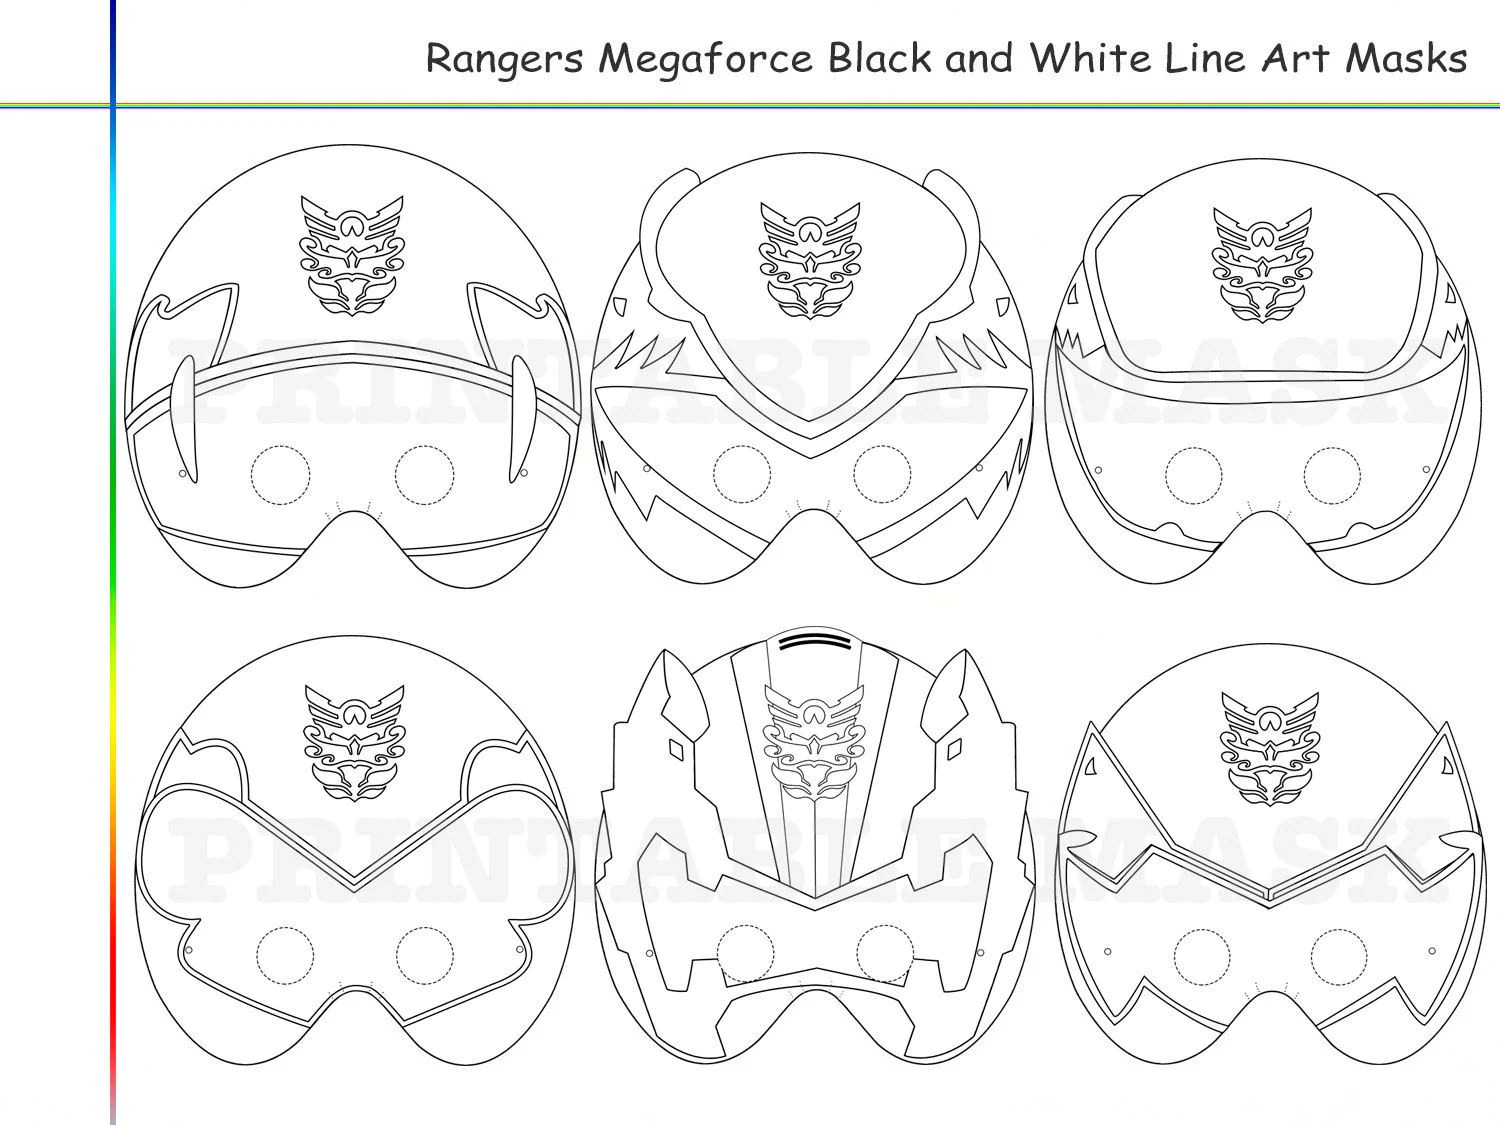 Coloring Pages Rangers 6 Megaforce Party Printable Black